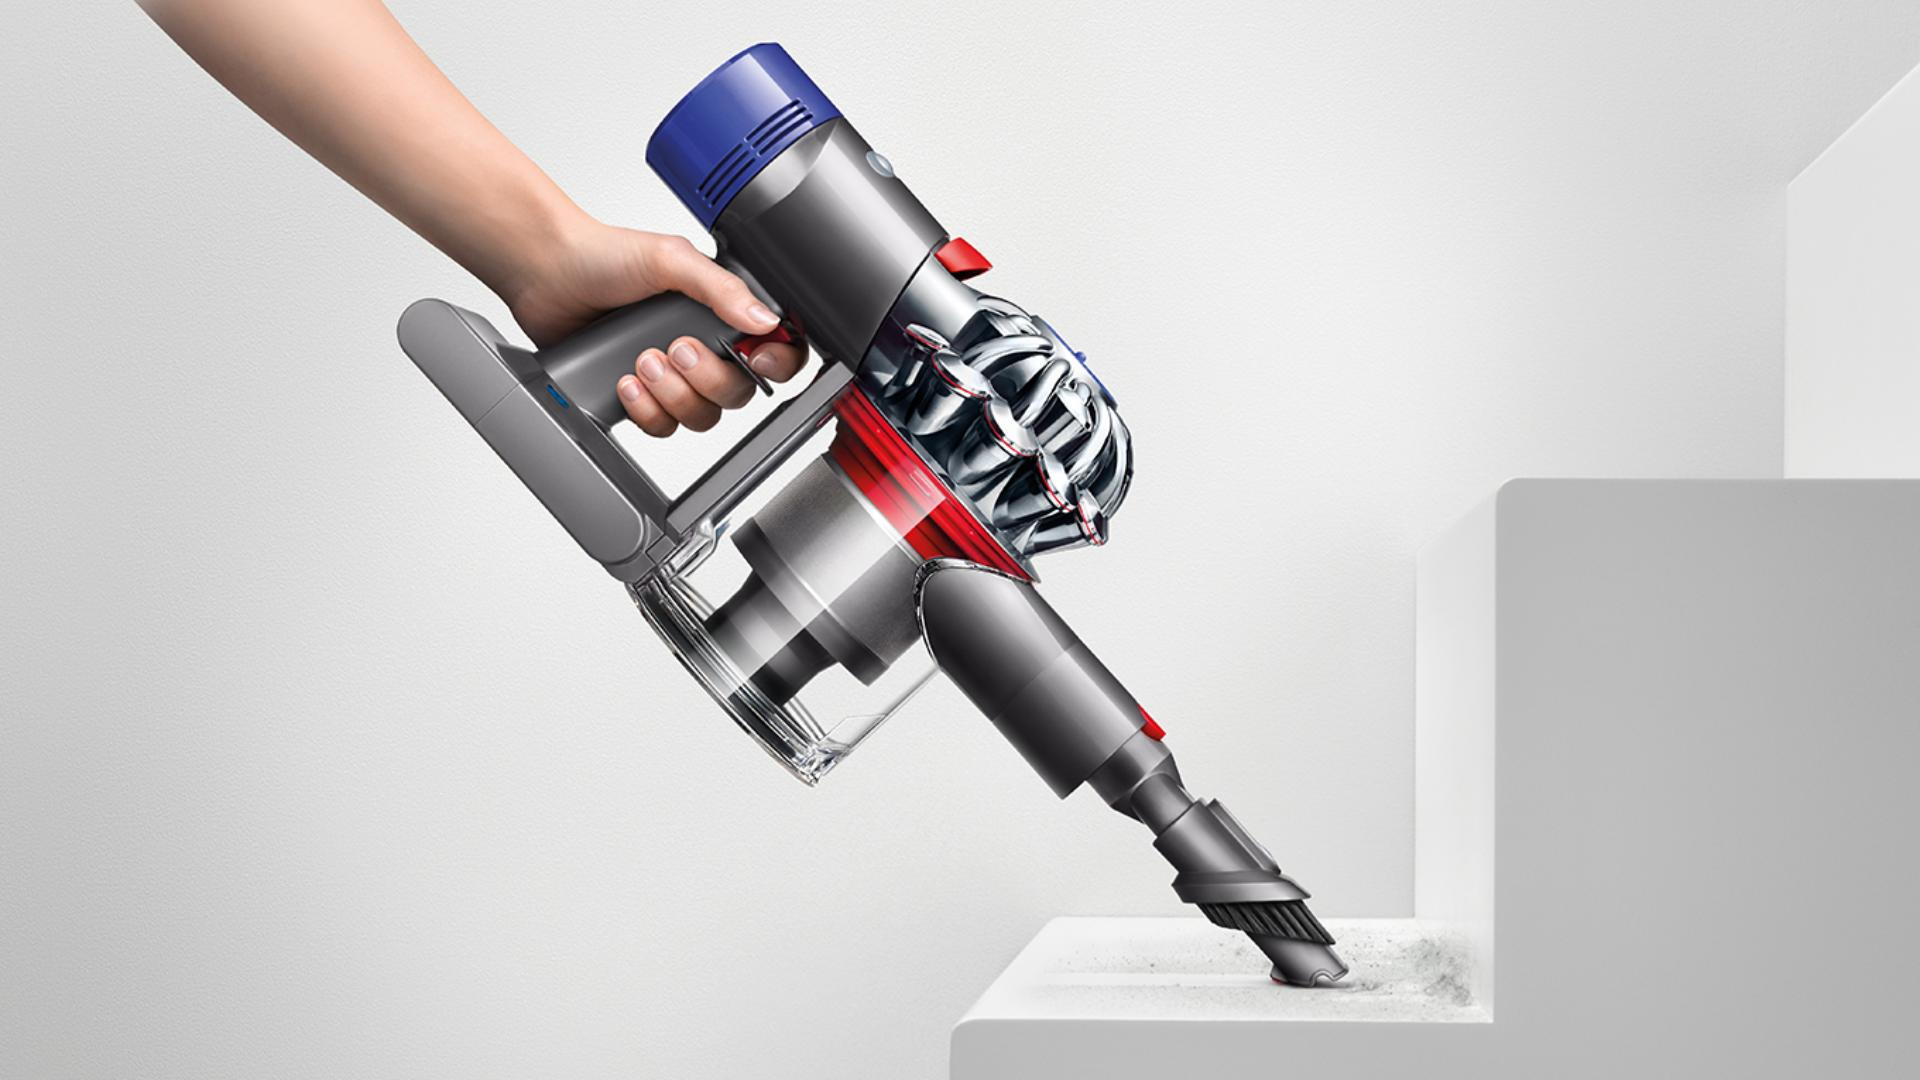 Demonstrating Dyson V8 Absolute transforming to a handheld in one click.